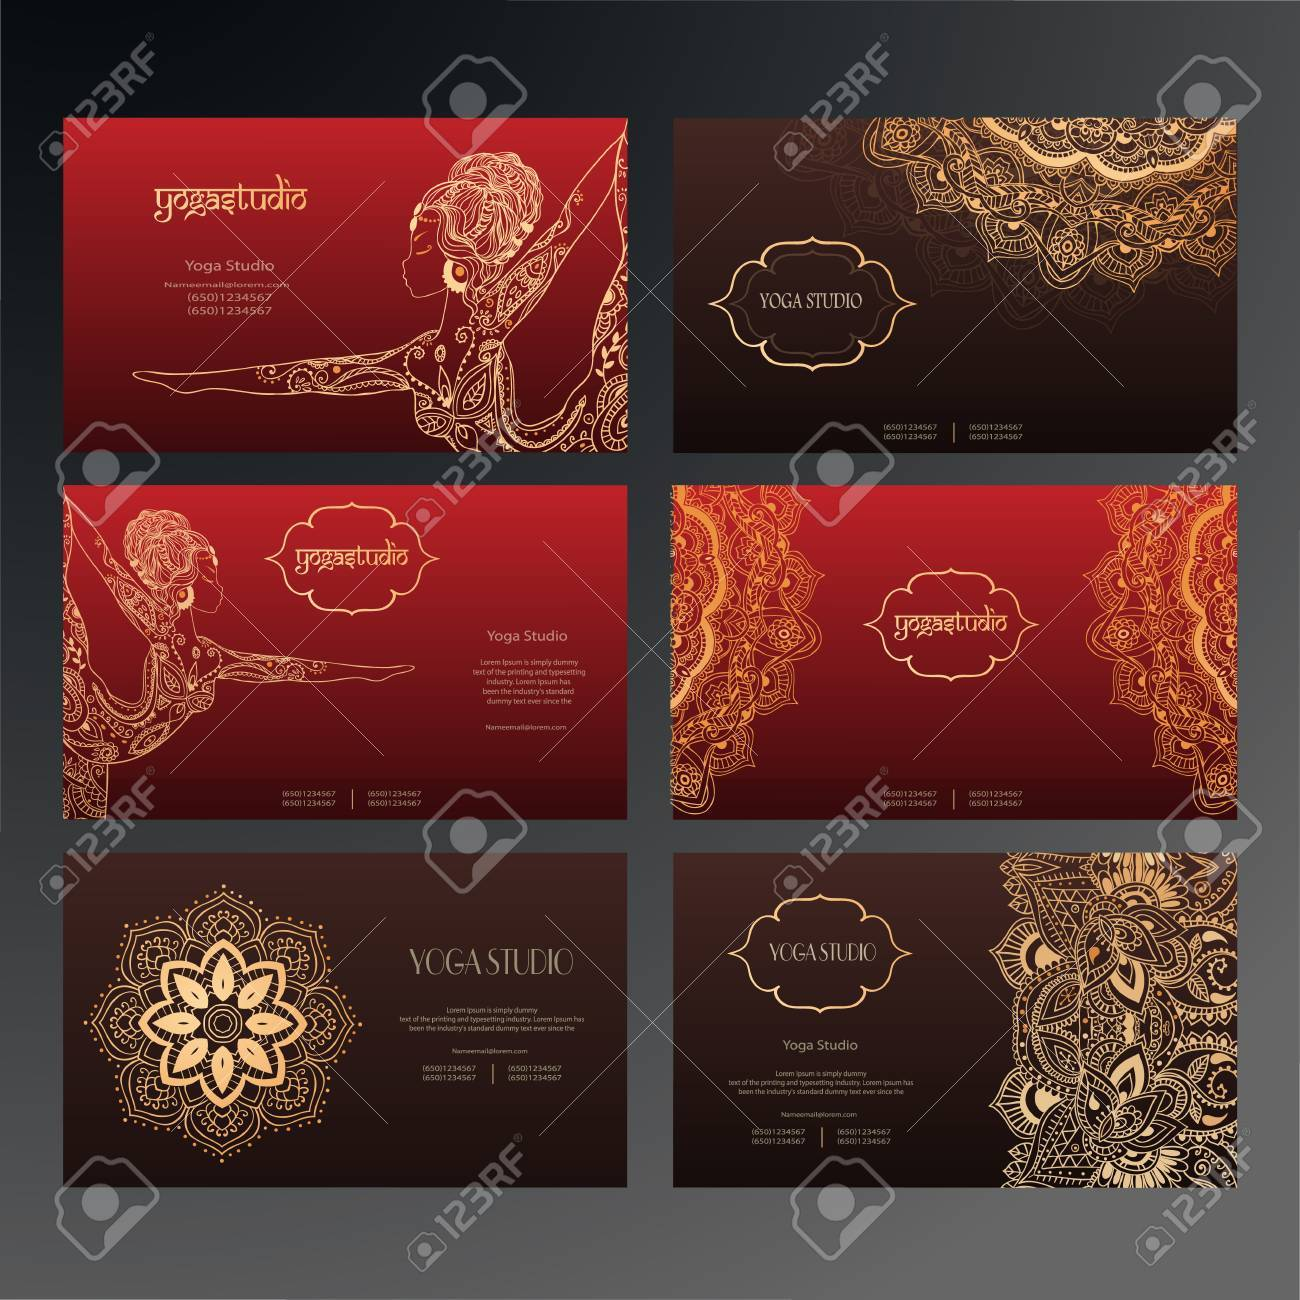 Set Of Business Card And Invitation Card Templates With Lace – Business Card Invitations